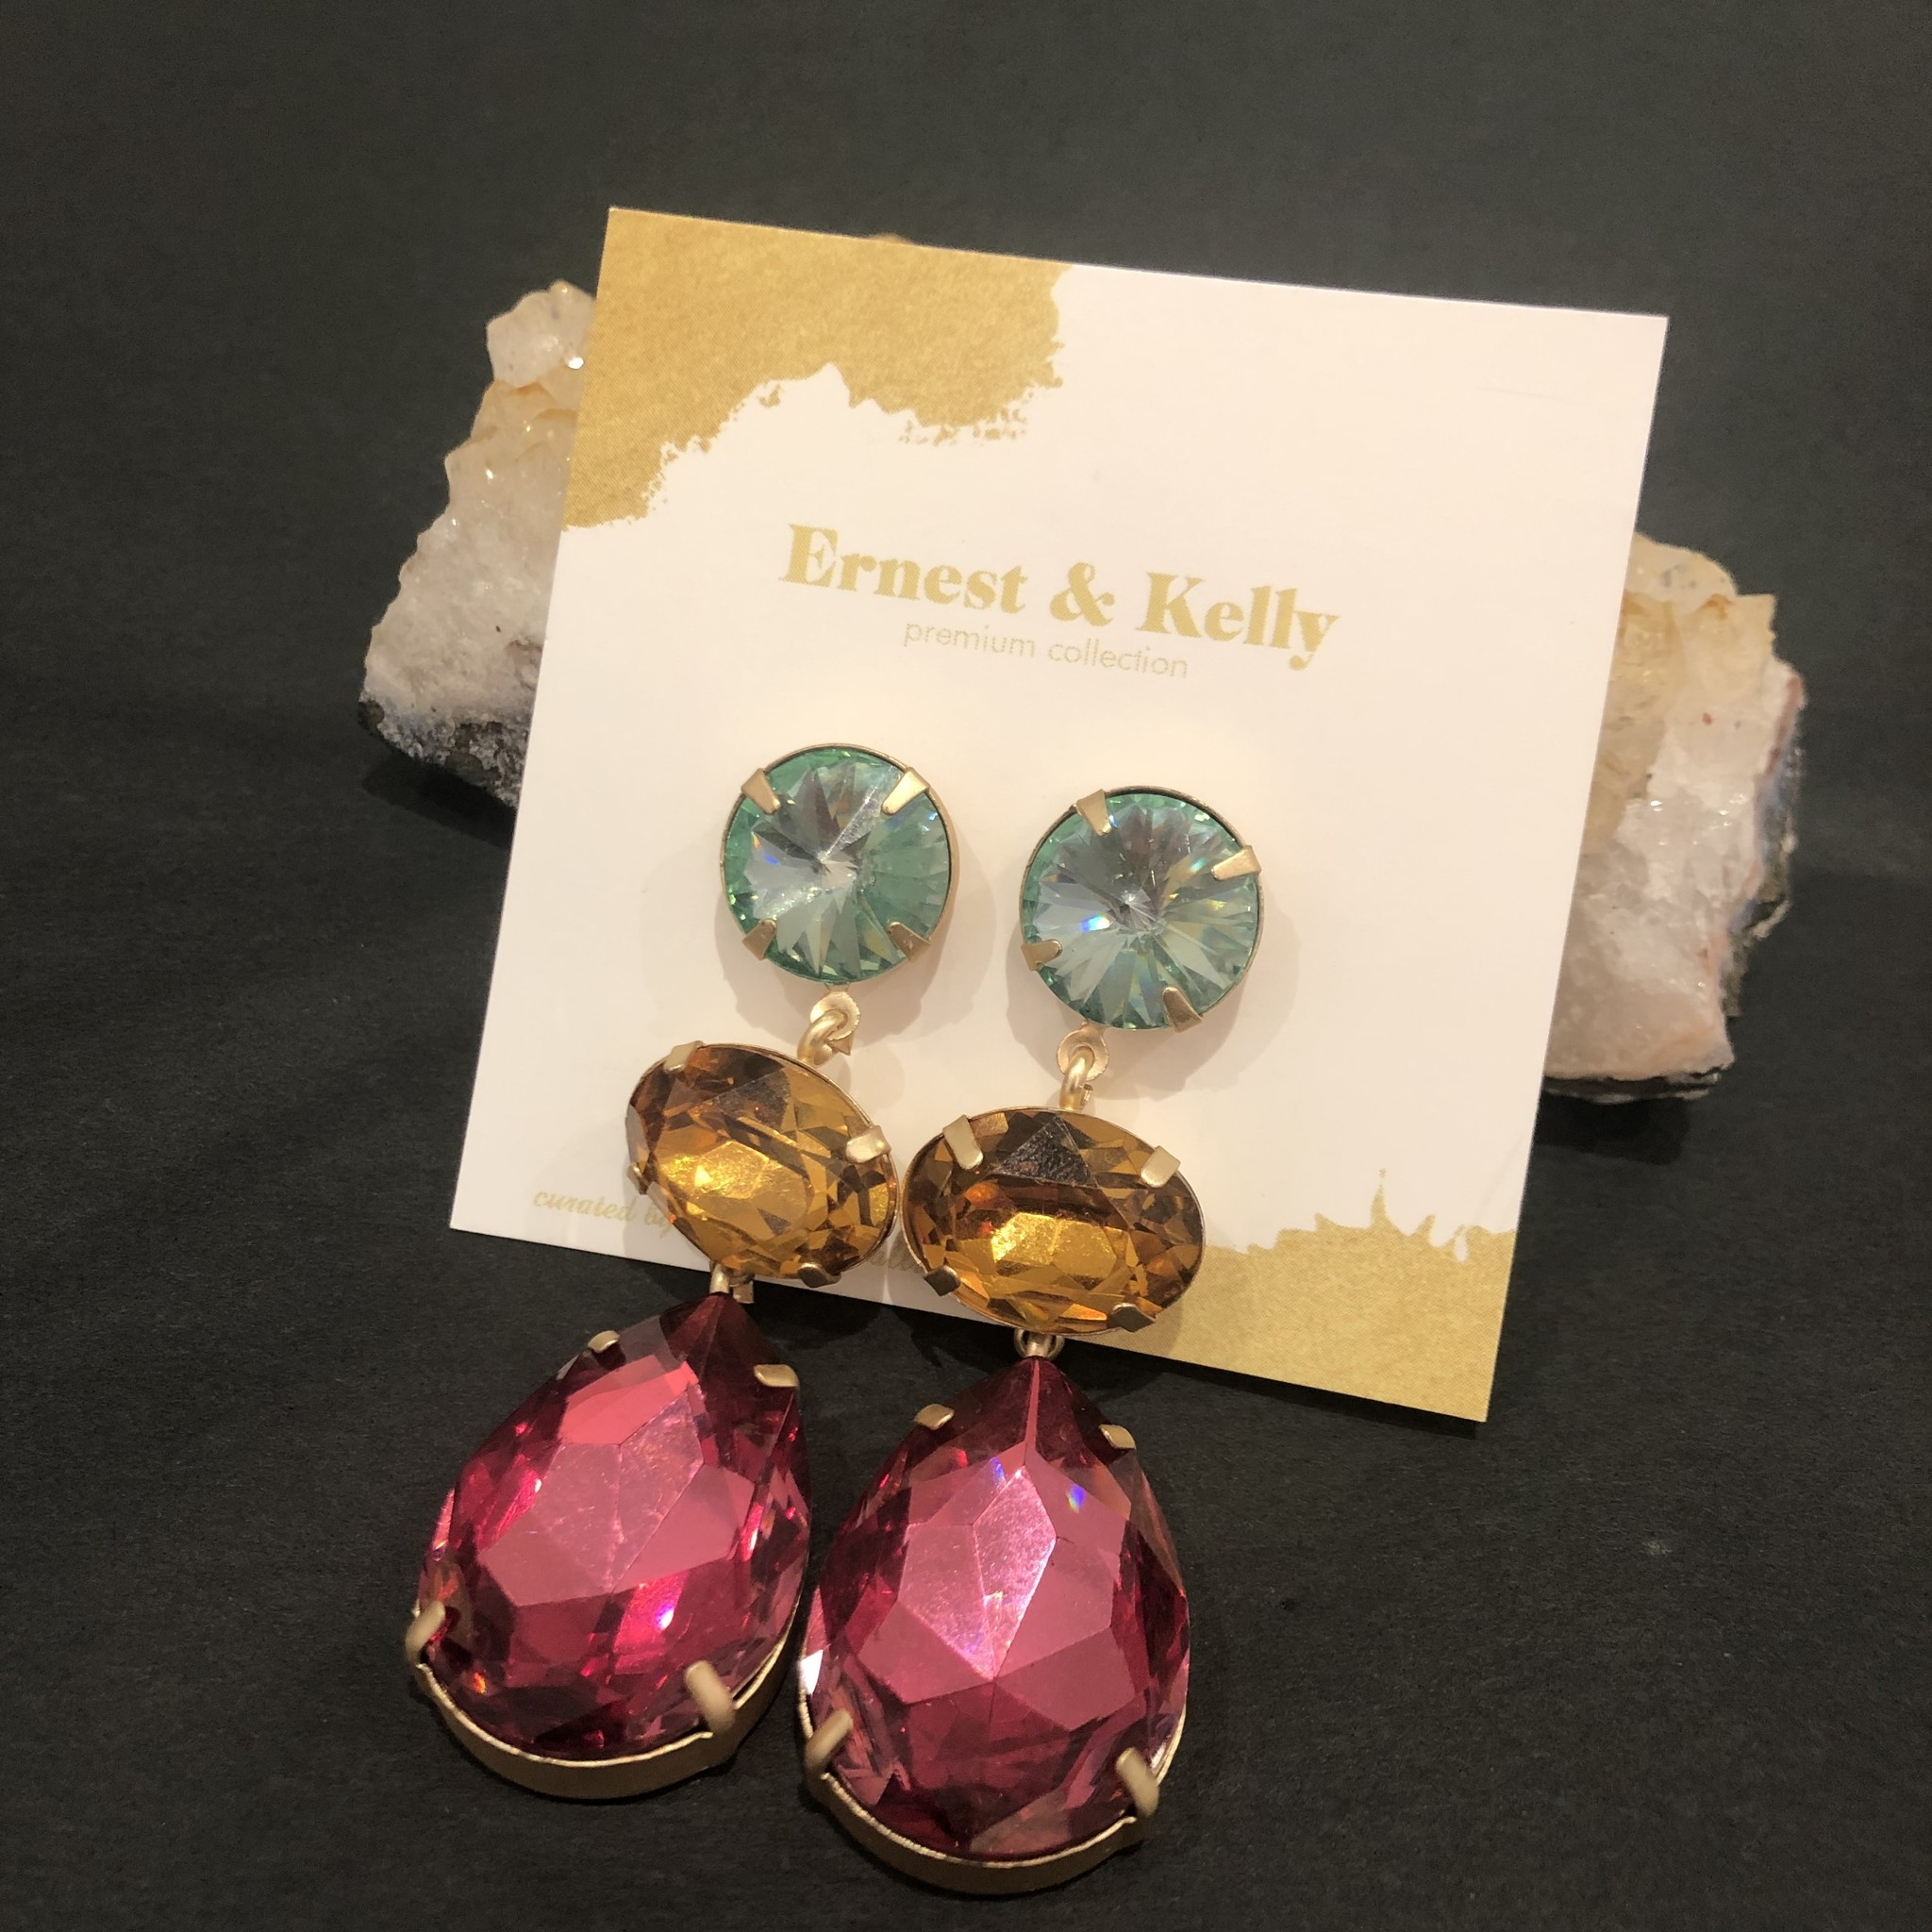 Ernest & Kelly Lizzo Jewel Earrings